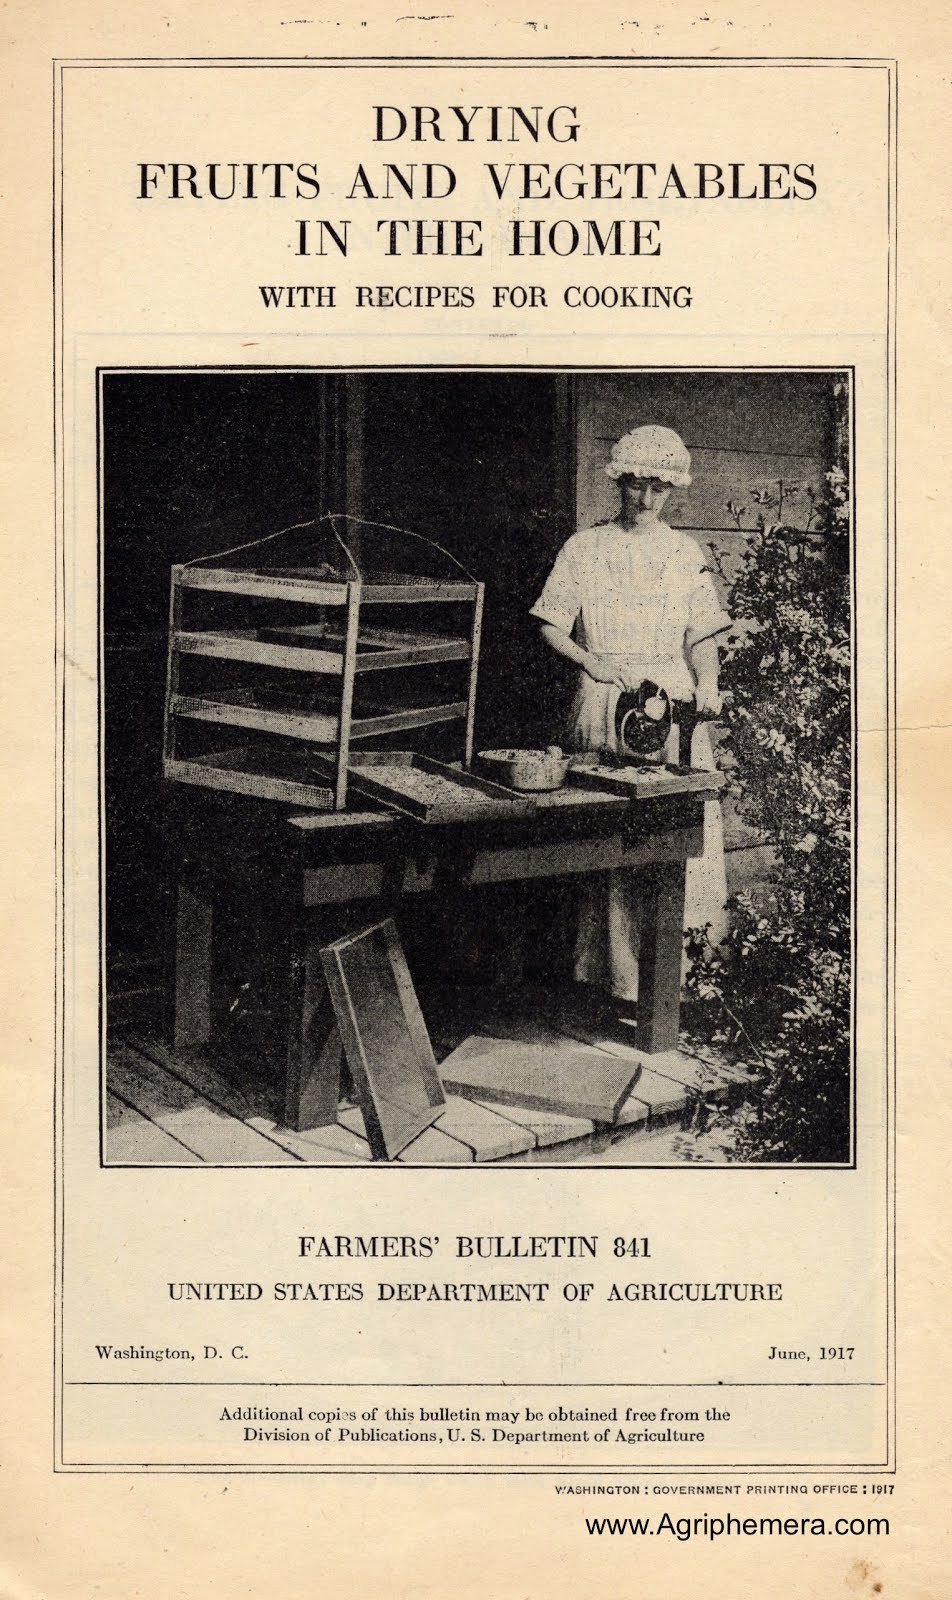 Drying Fruits and Vegetables In The Home (1917)